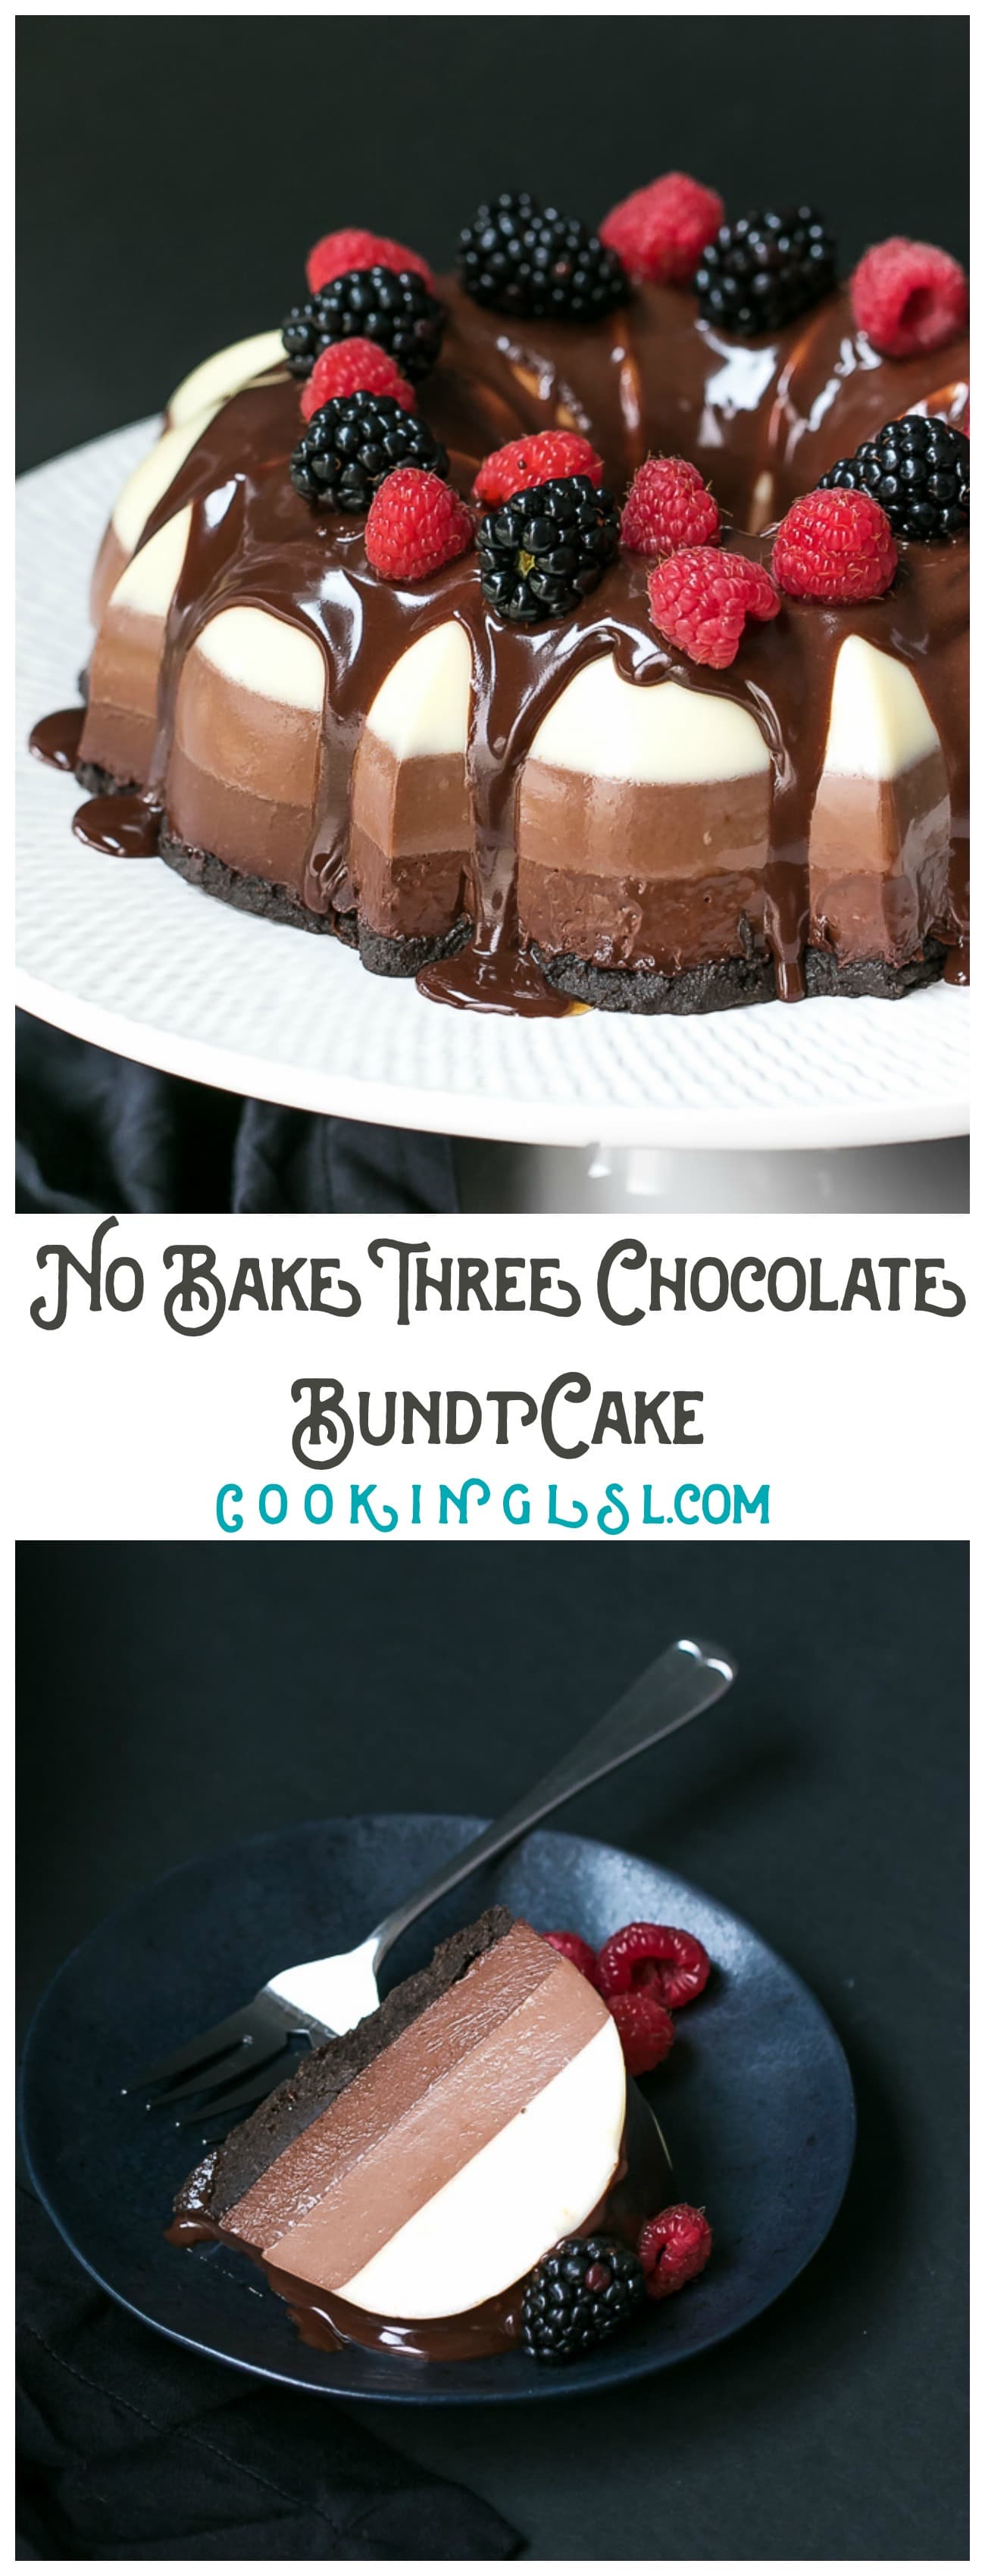 No-Bake Three Chocolate Cake Recipe - made in a bundt pan, layers of white, milk and dark chocolate and Oreo cookie crust. Topped with chocolate ganache and fresh berries. A chocolate lover's heaven!